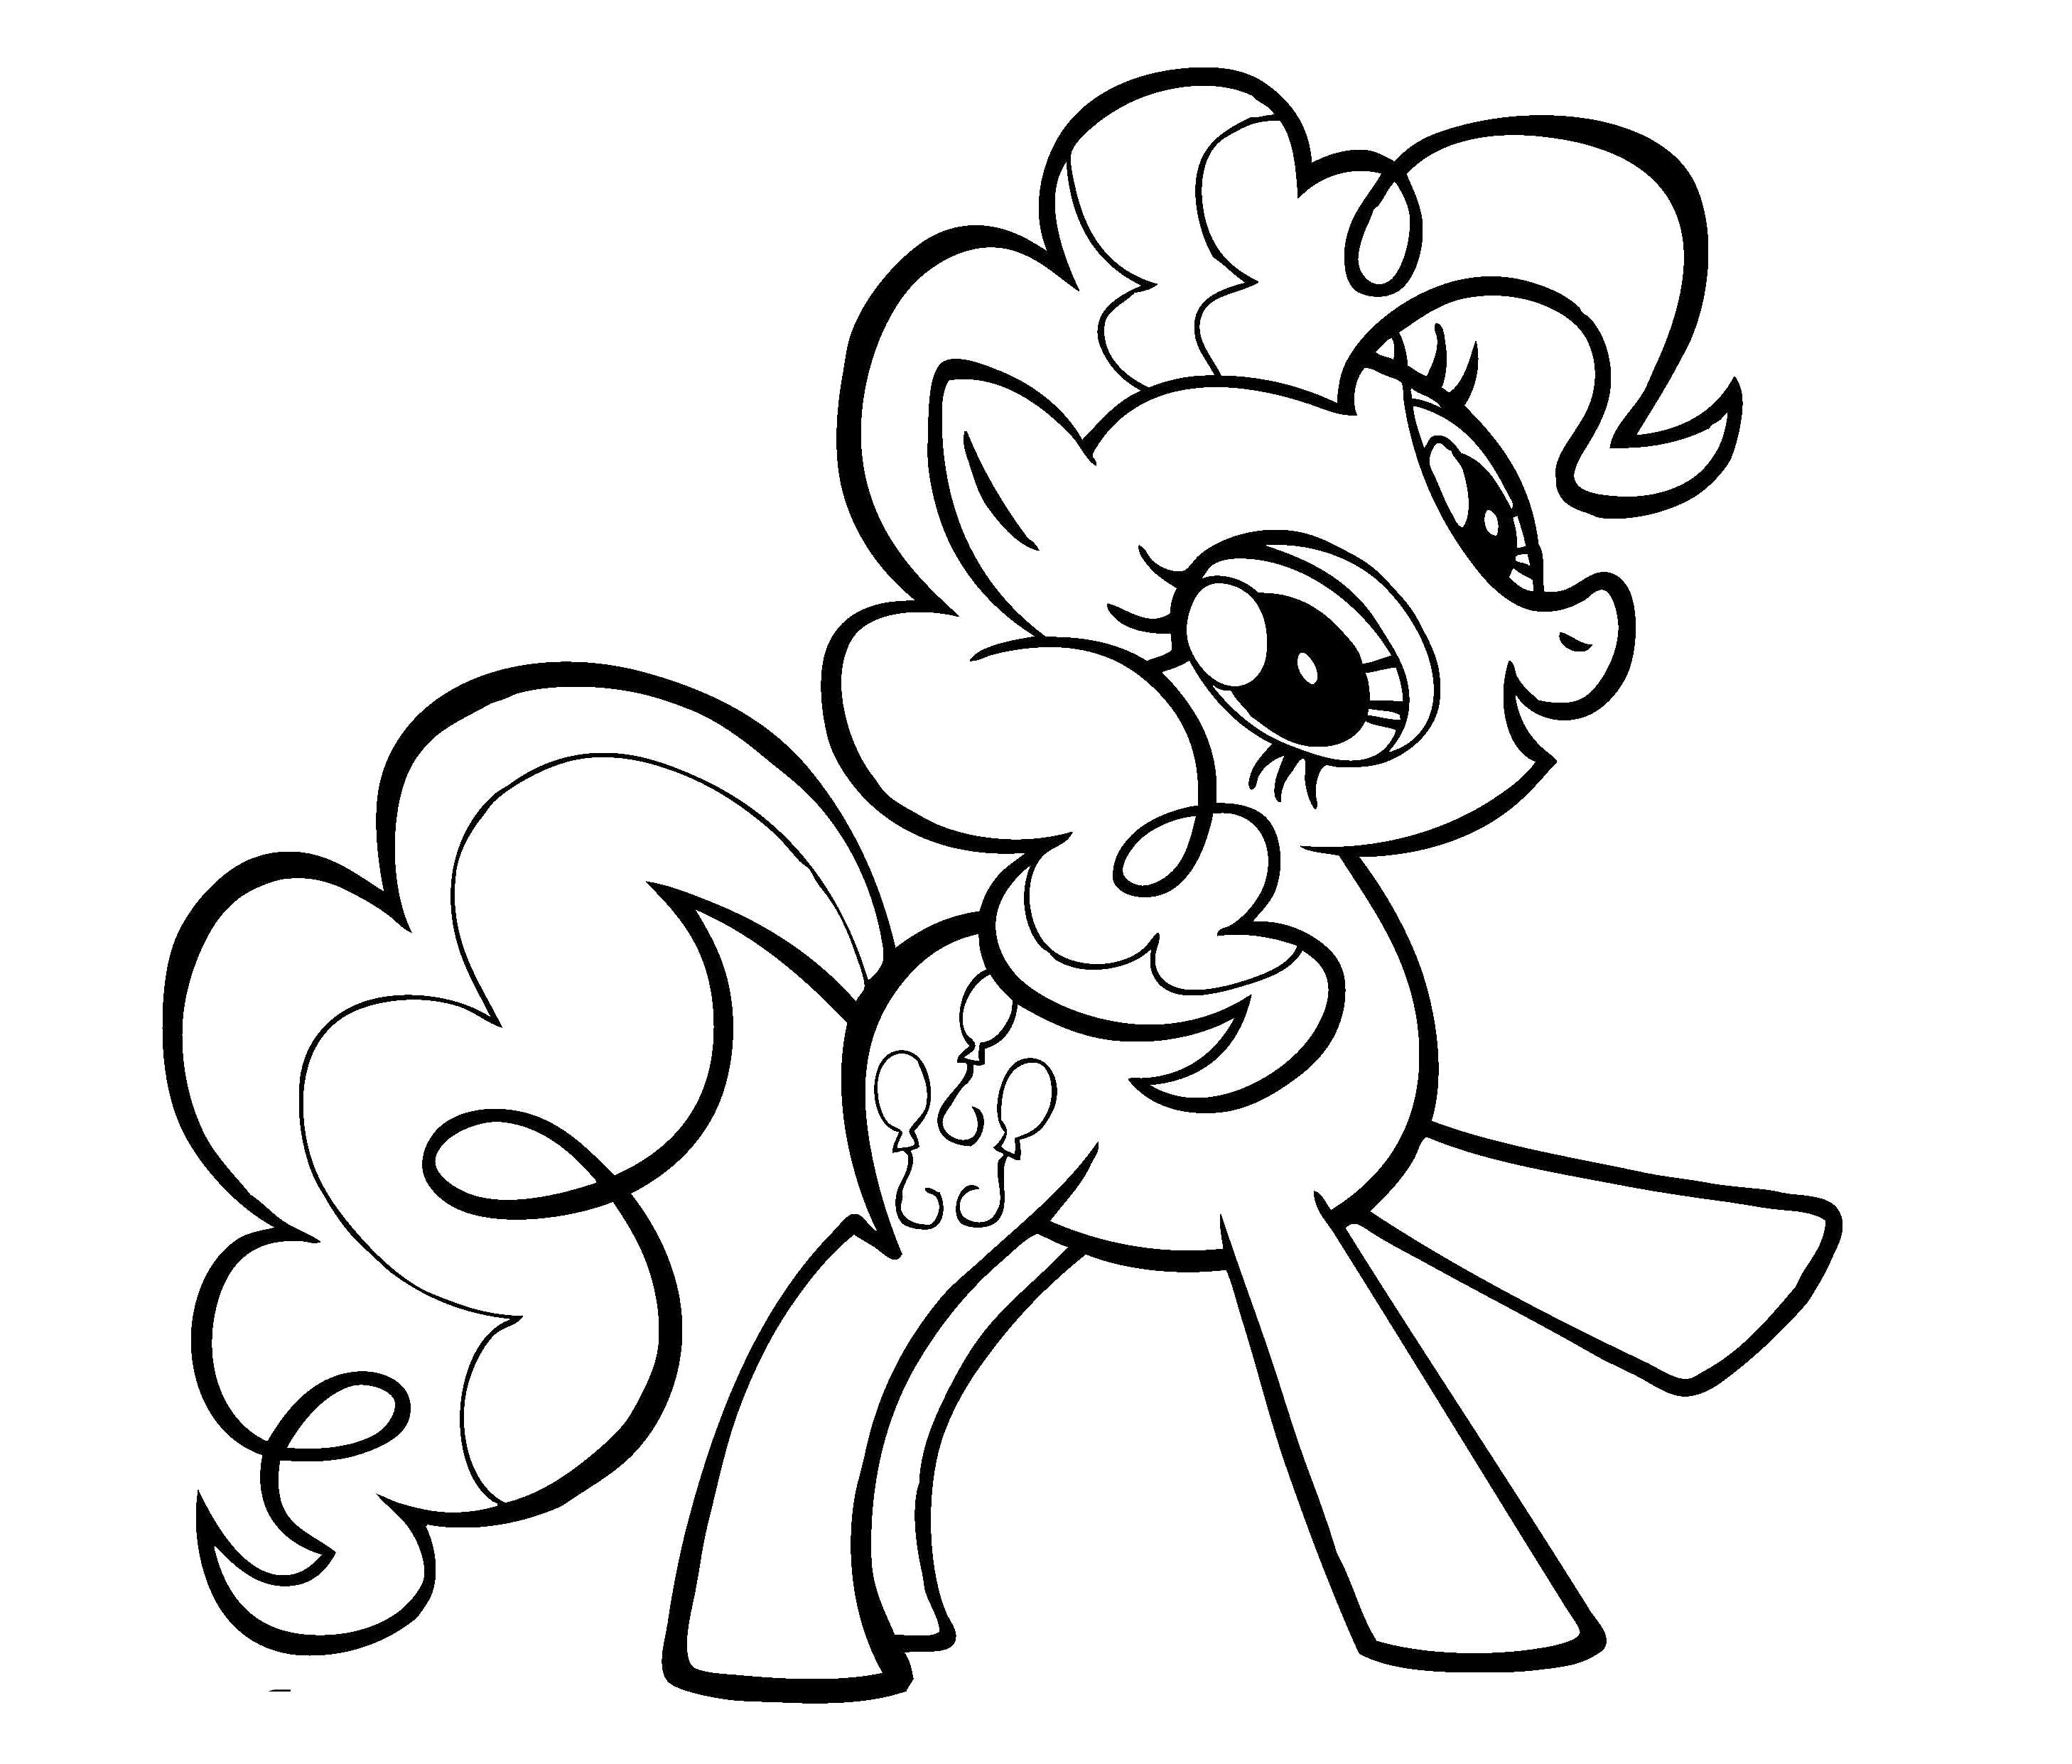 My Little Pony Coloring Pages Pinkie Pie And Rainbow Dash Di 2020 Gambar Anak